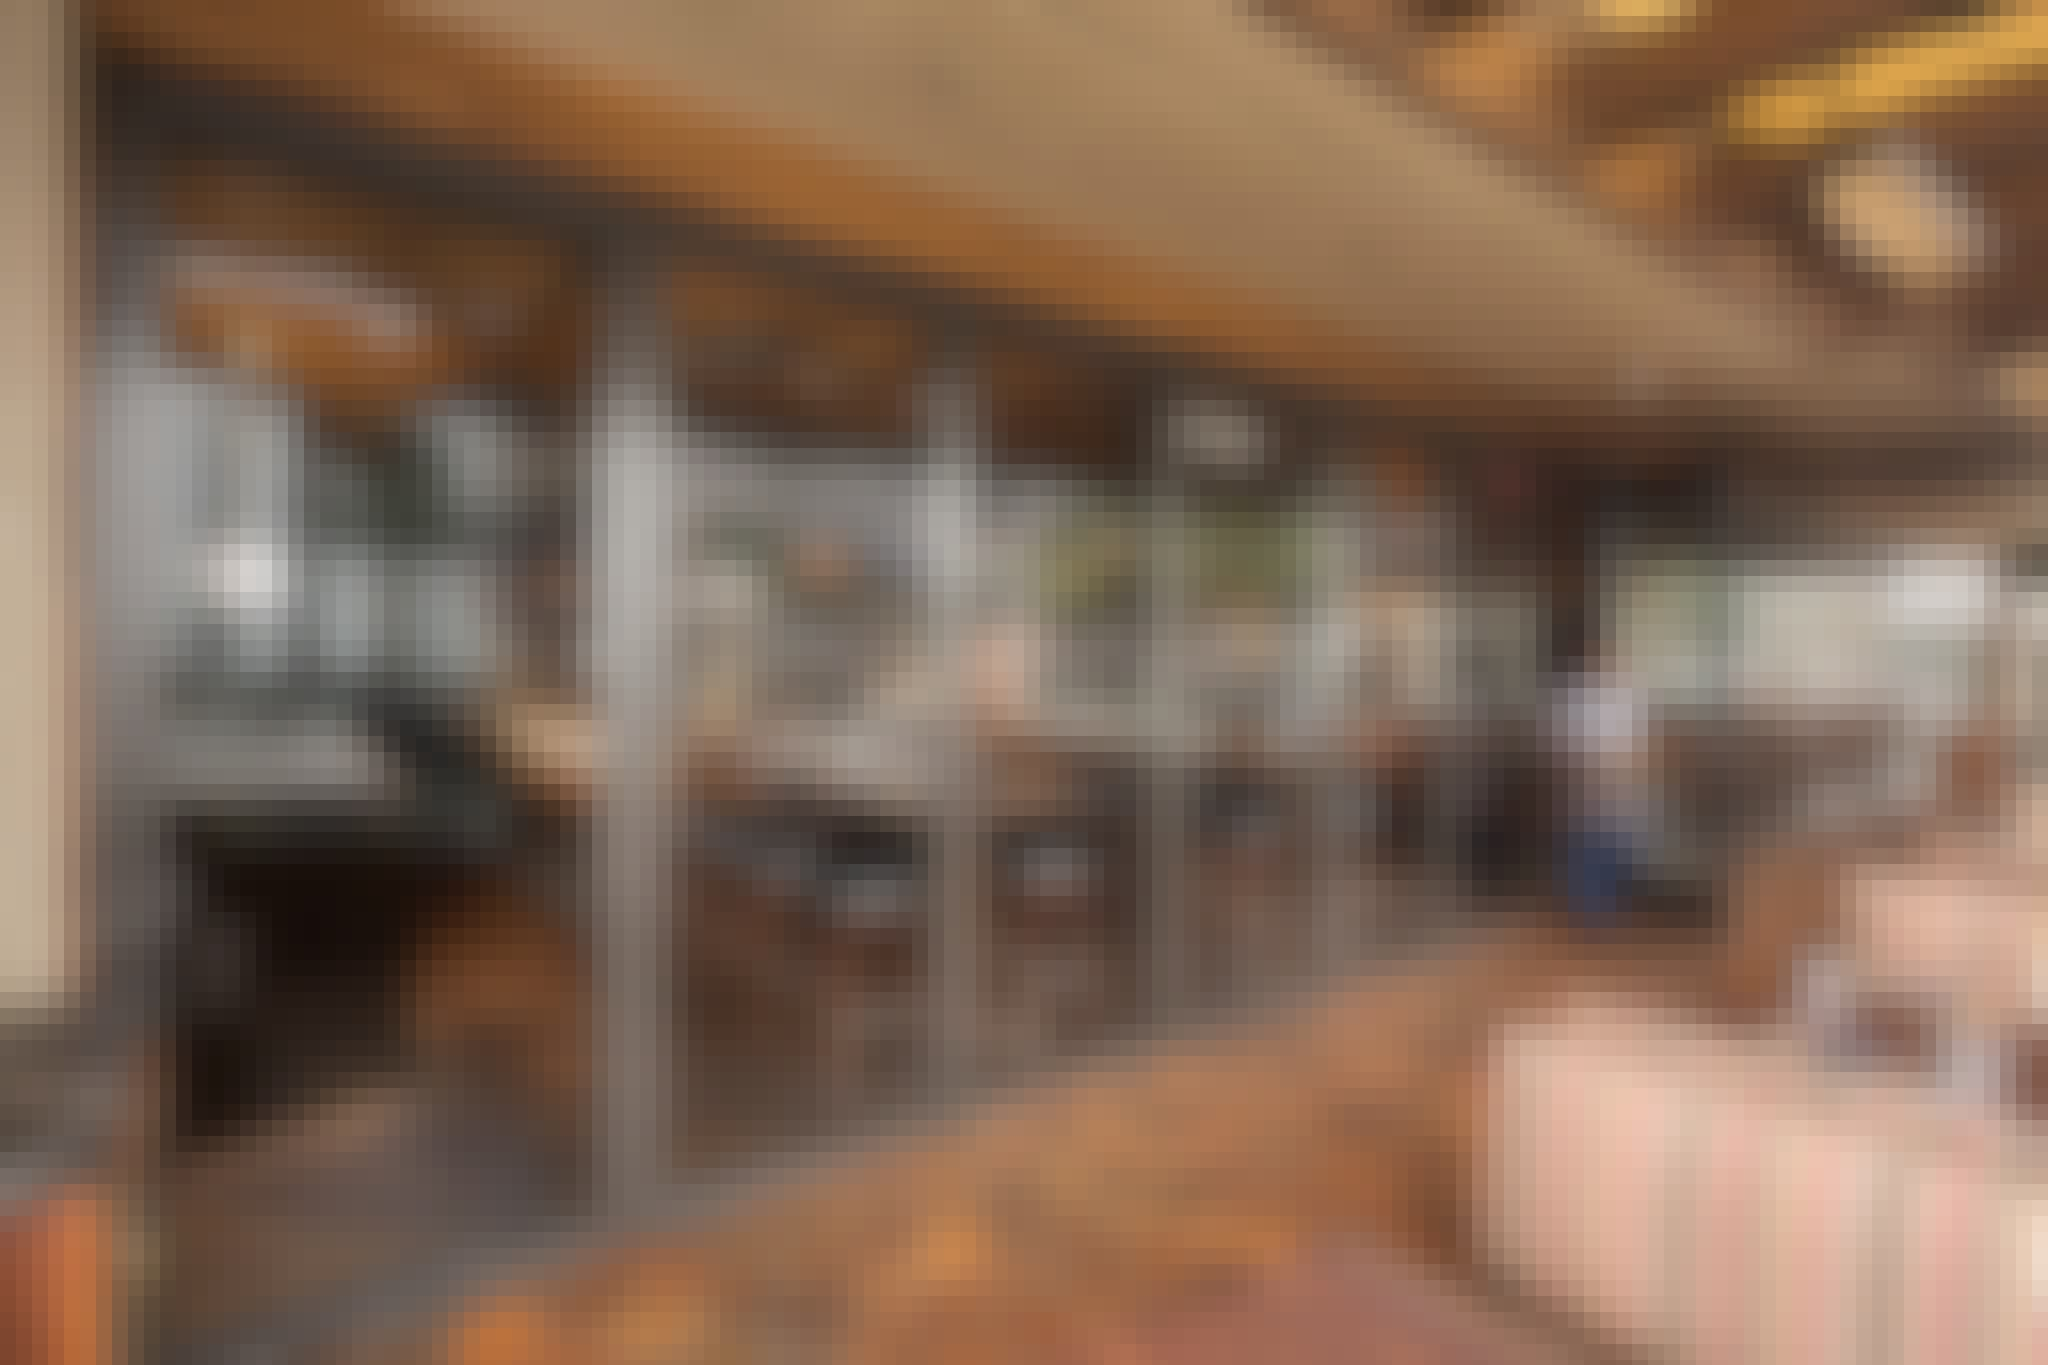 commercial design in restaurant with sliding glass wall and server using swing door